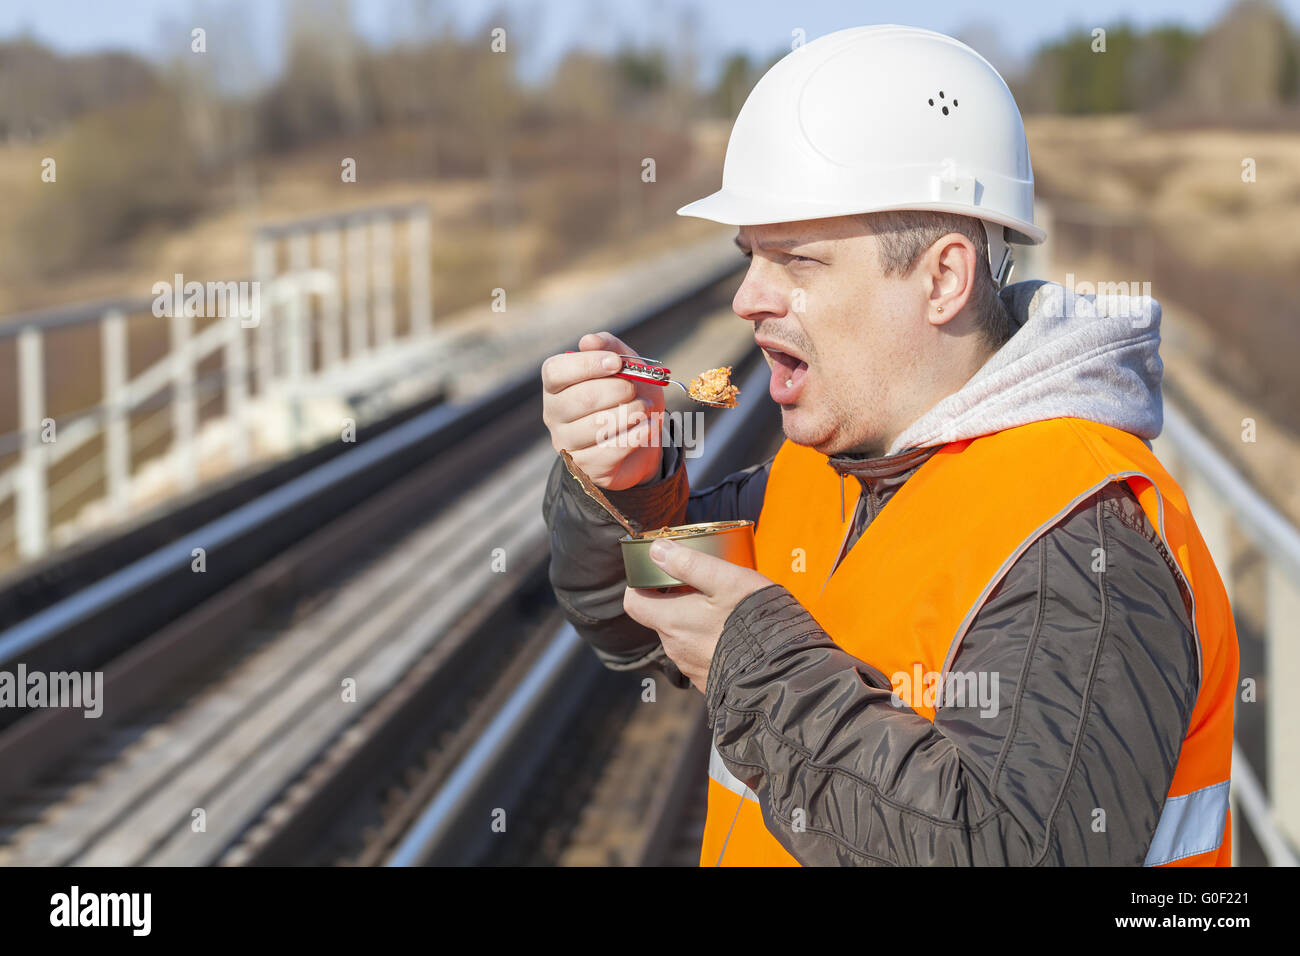 Worker with canned meat on a railway - Stock Image